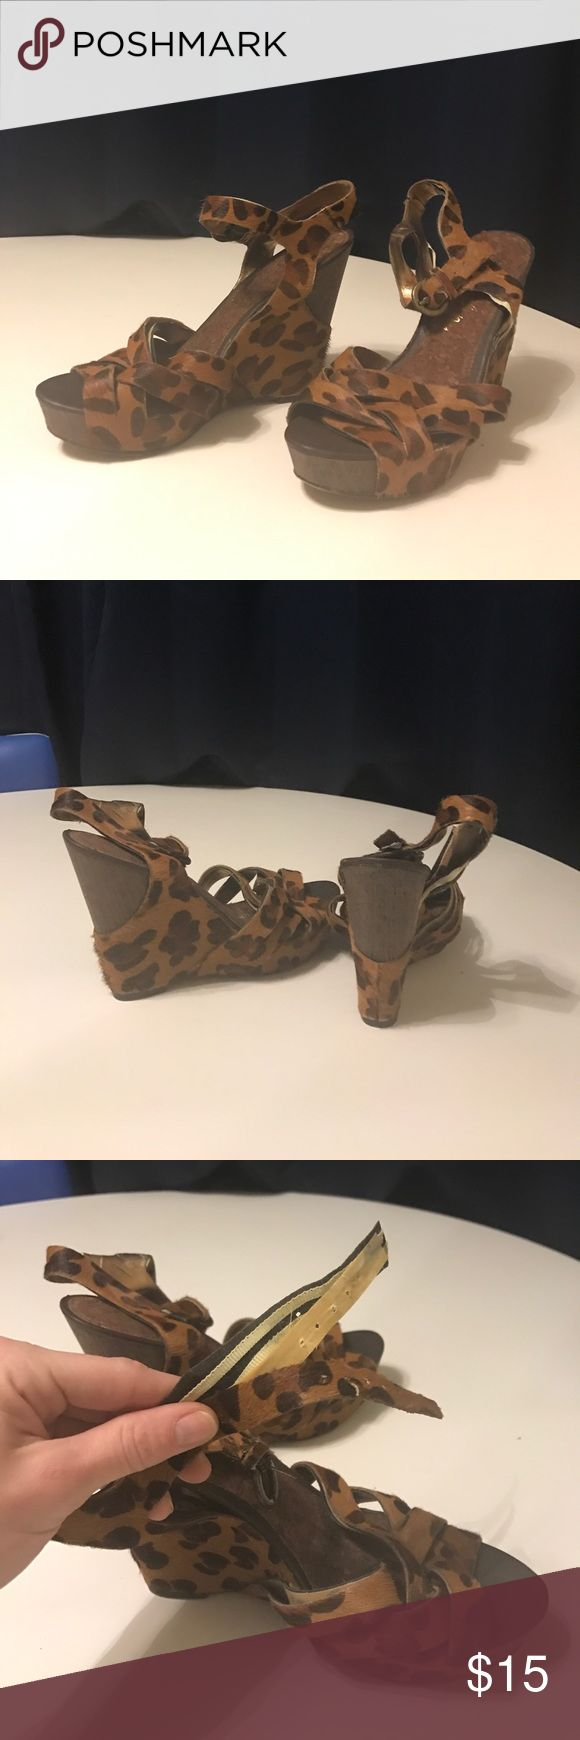 """Sam Edelman wedges Super cute 4.5"""" wedge. Leopard print. Faux fur. The fur strips are separating from the backing. Could be taken to shoe doctor! Sam Edelman Shoes Wedges"""